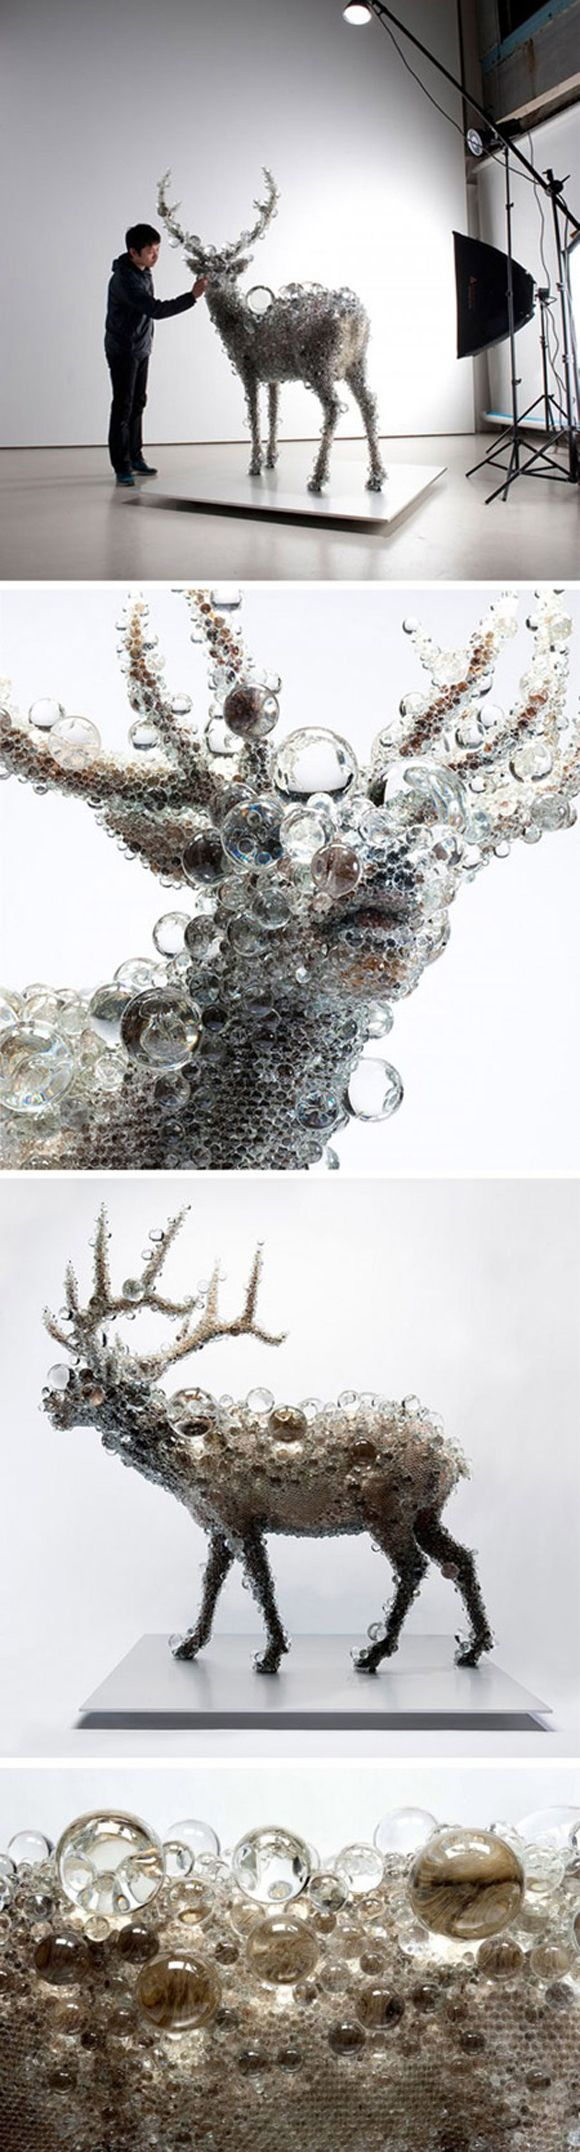 Deer sculpture made completely of glass. love! somehow i need to make a sculpture of a deer, made out of wood. ah! 剥製にガラスの球体を付けるという発想と大小のガラスの球体の配置バランスが良いと思う。お気に入りの作品です